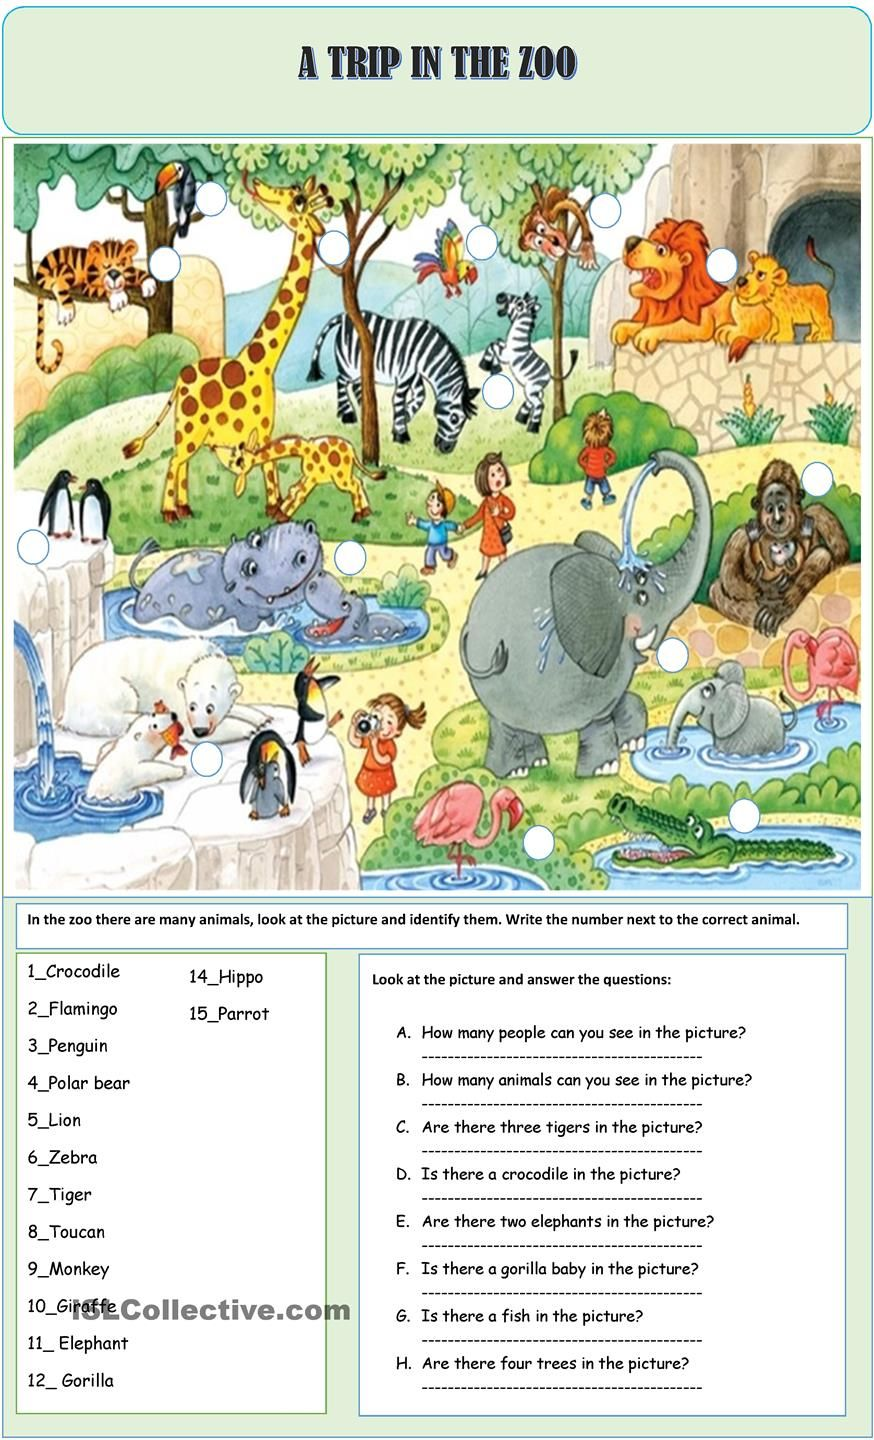 a trip in the zoo esl worksheets of the day english classroom english lessons teaching english. Black Bedroom Furniture Sets. Home Design Ideas